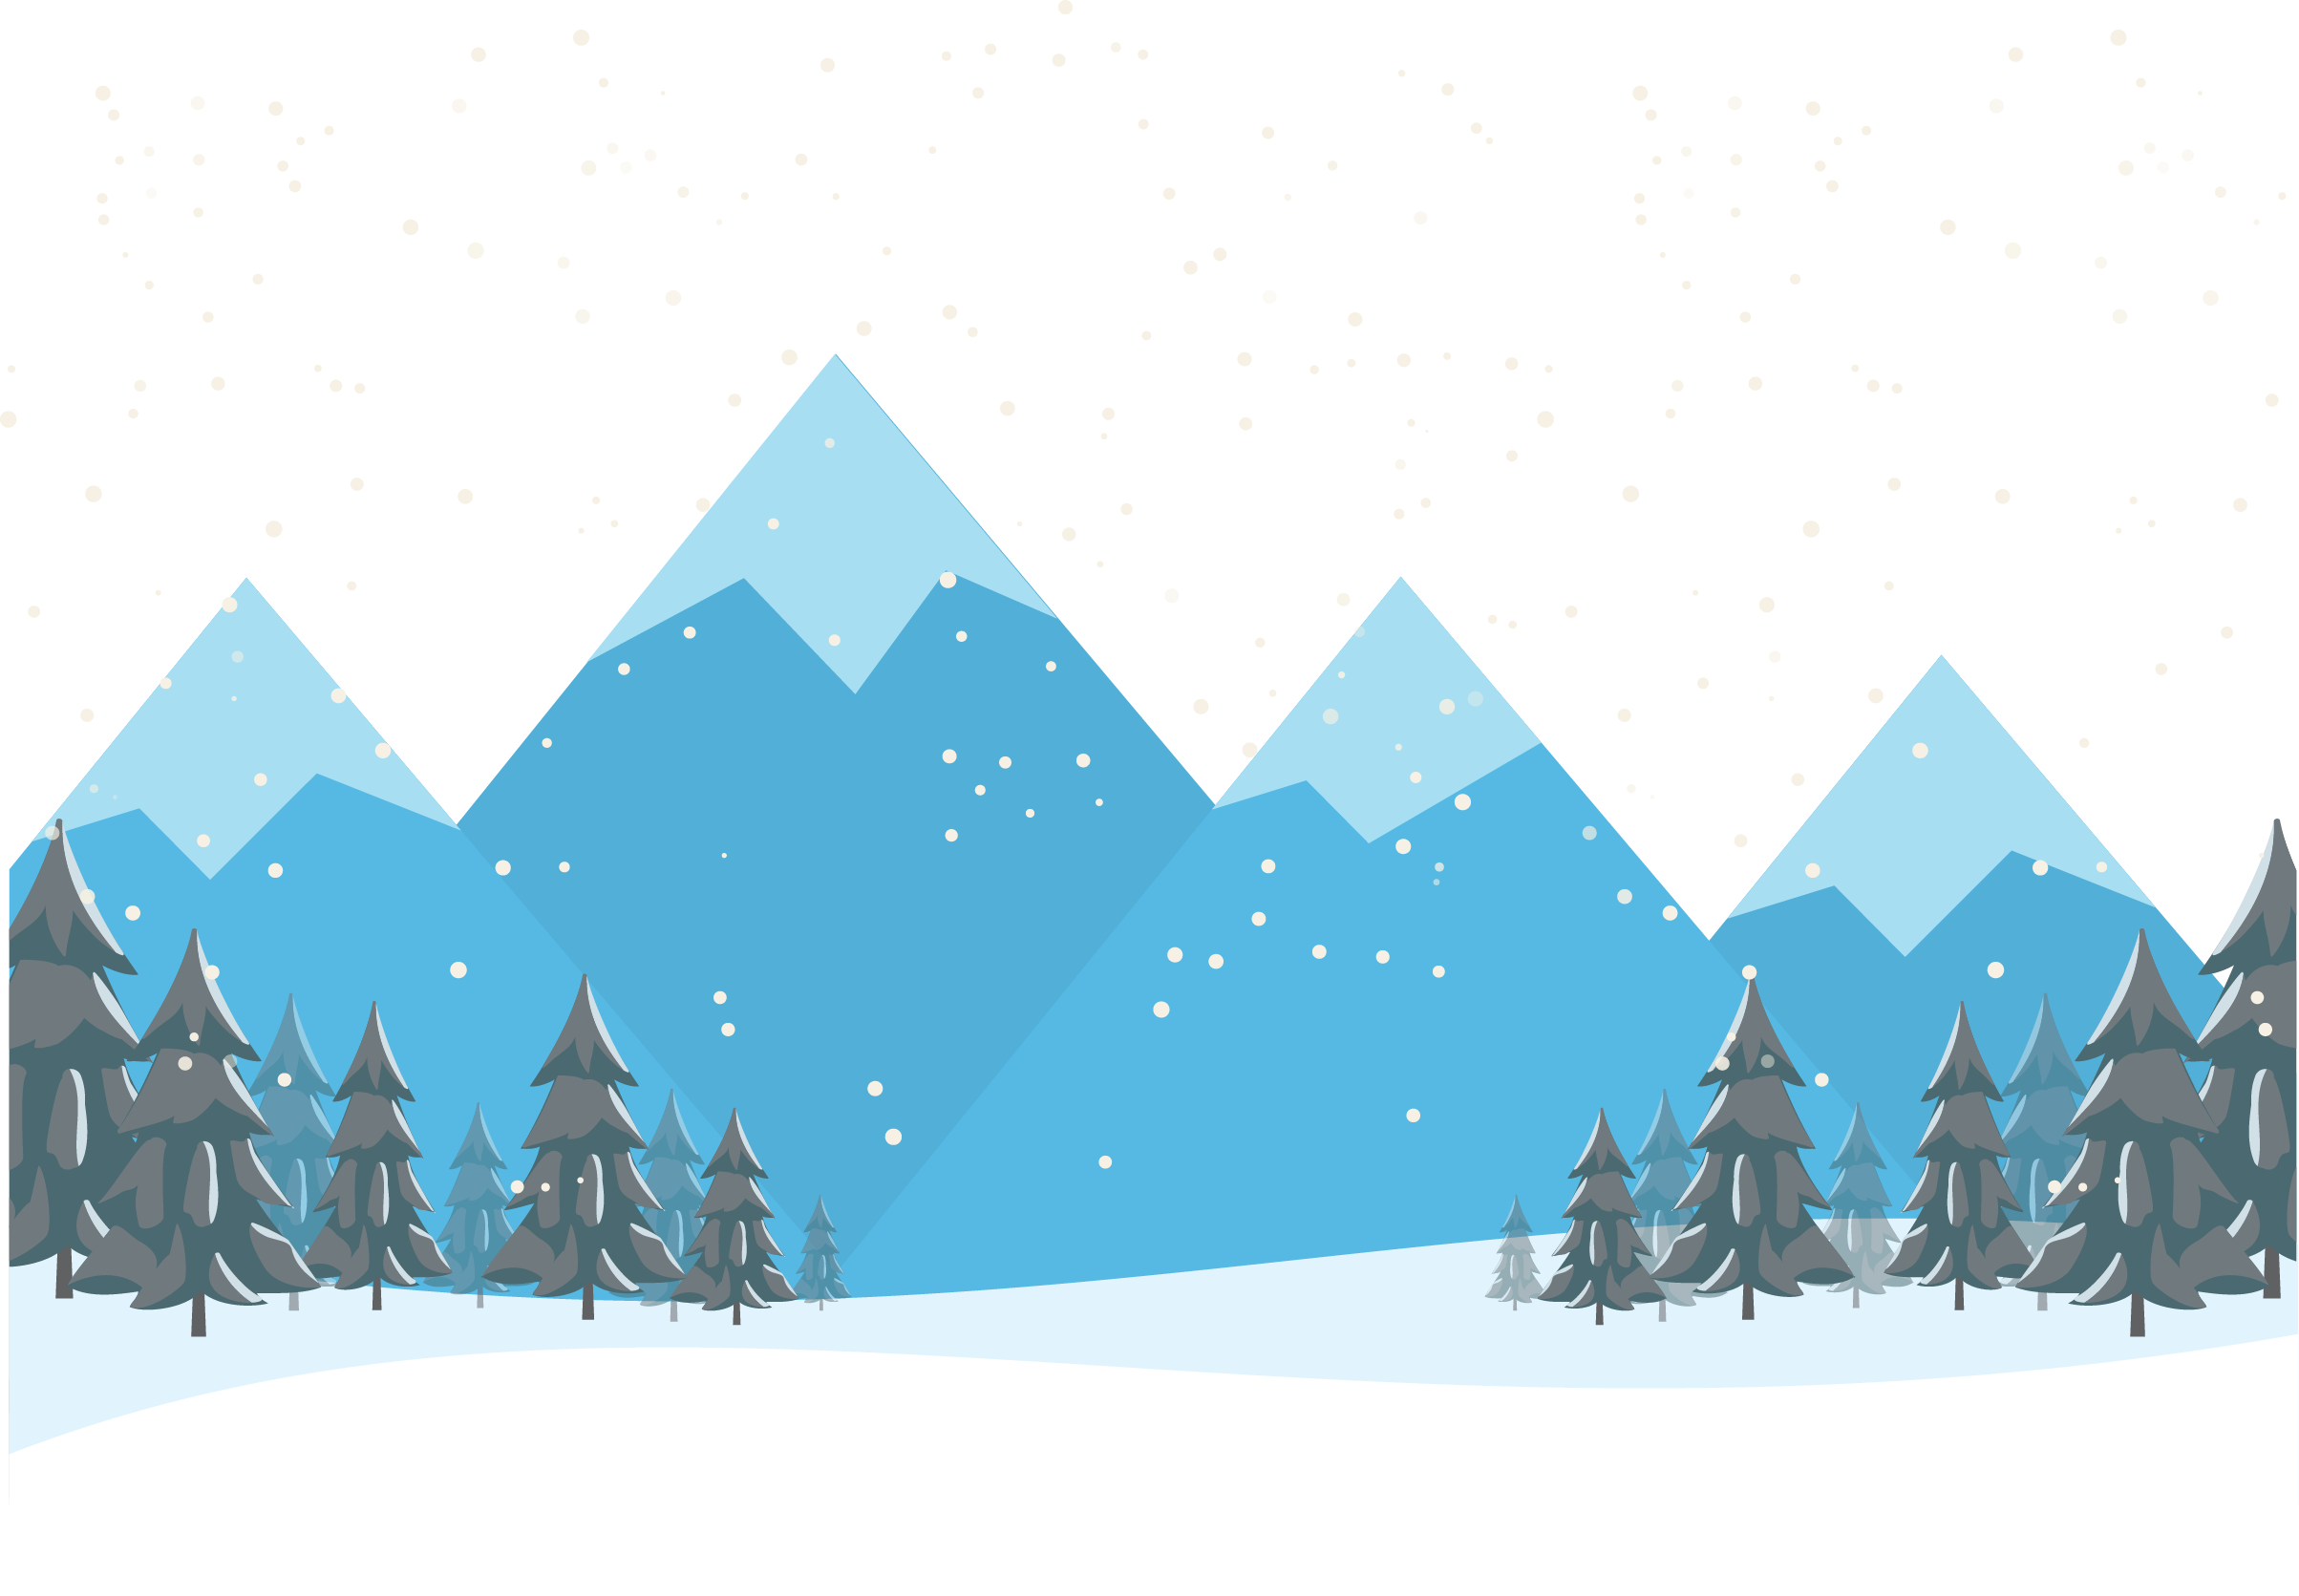 Forrest drawing mountains. Cartoon landscape forest snow